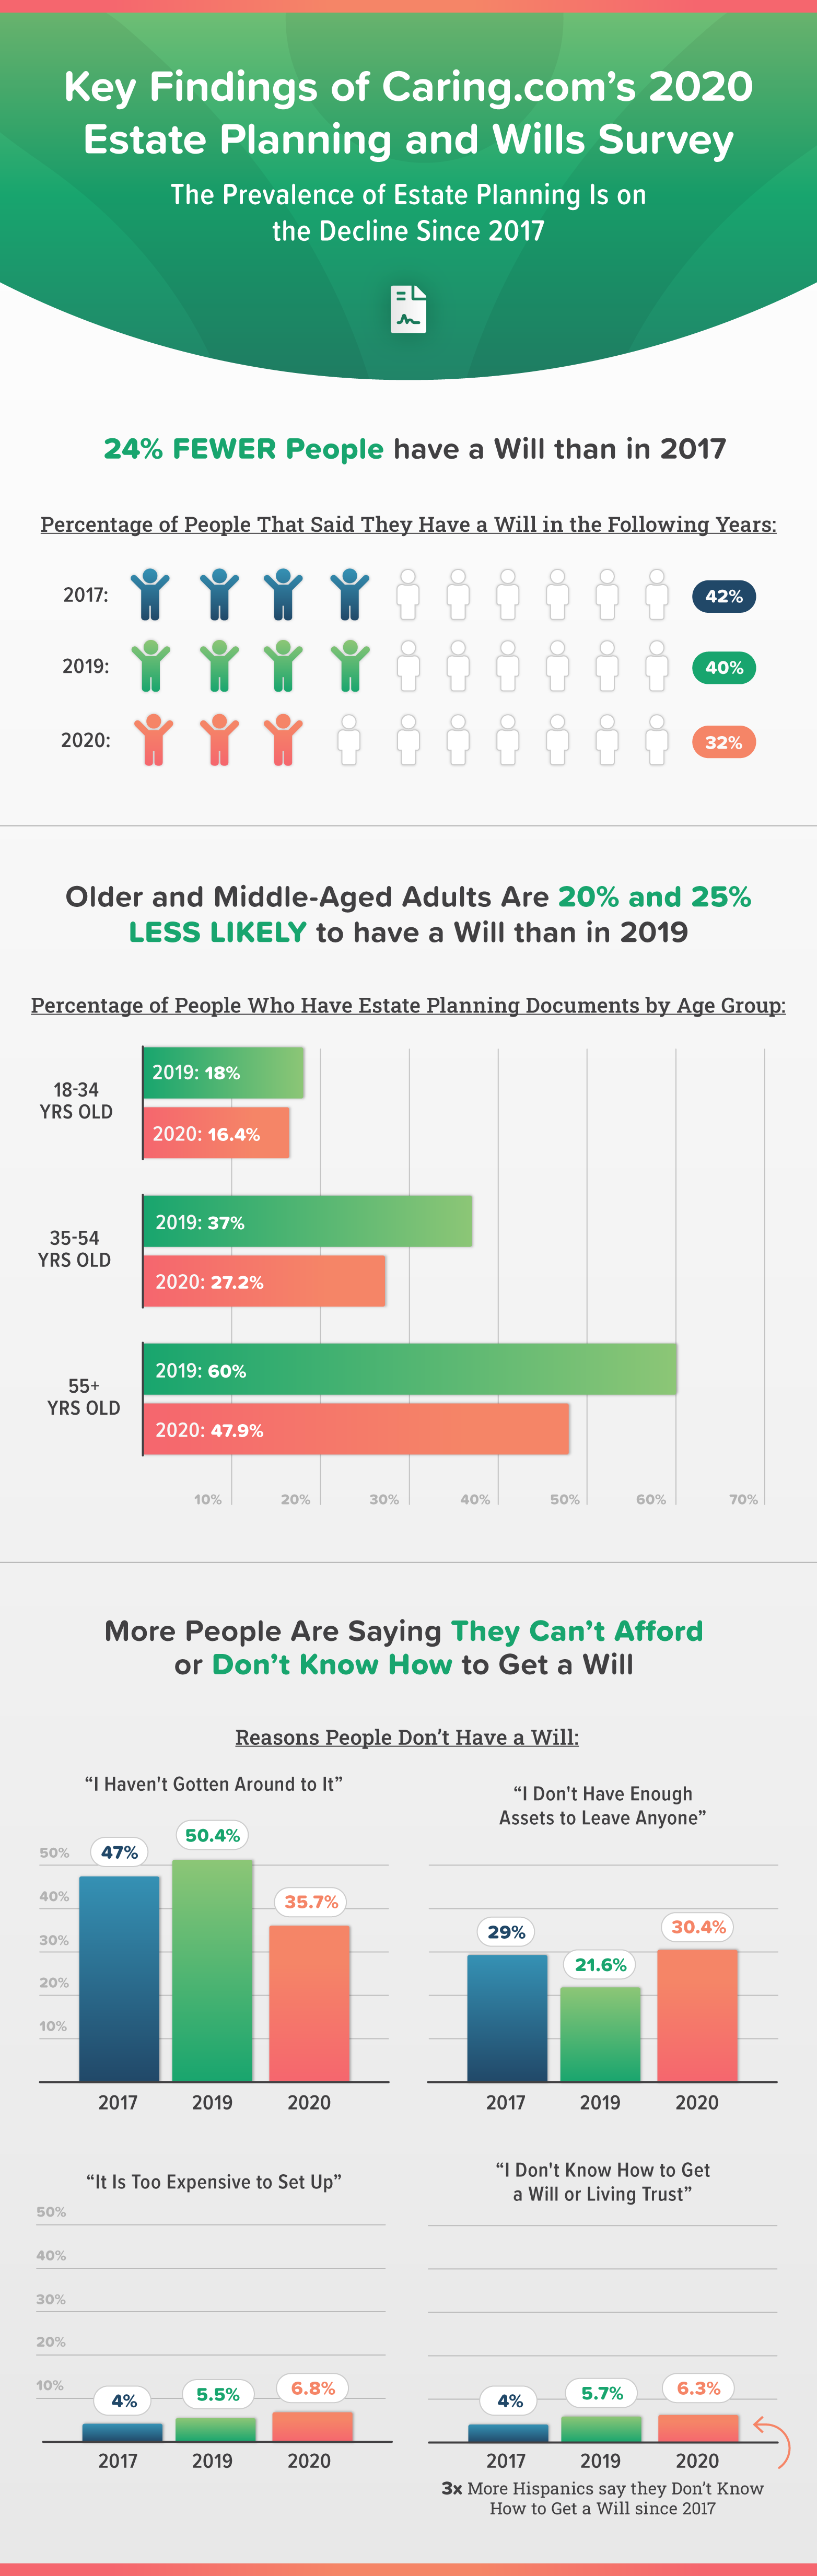 Infographic showing stats and graphs about the prevalence of estate planning in 2020.